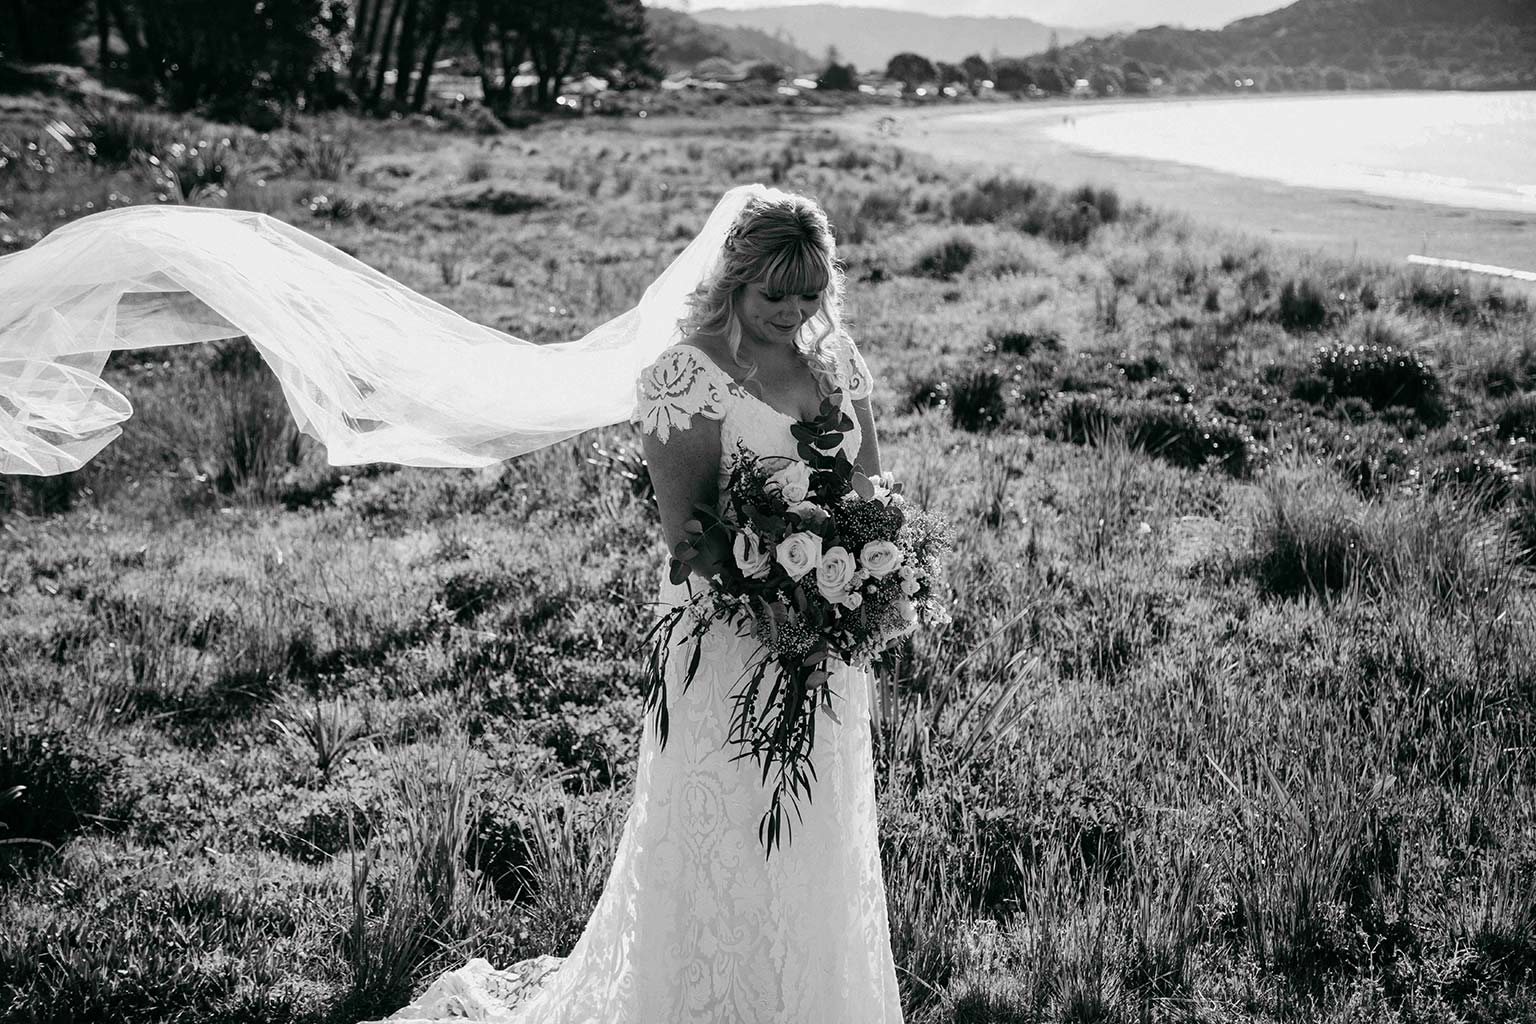 Vinka Design Features Real Weddings - bride wearing bespoke Vinka wedding gown - bride poses with bouquet in sand dunes with veil flowing in the wind - in black and white